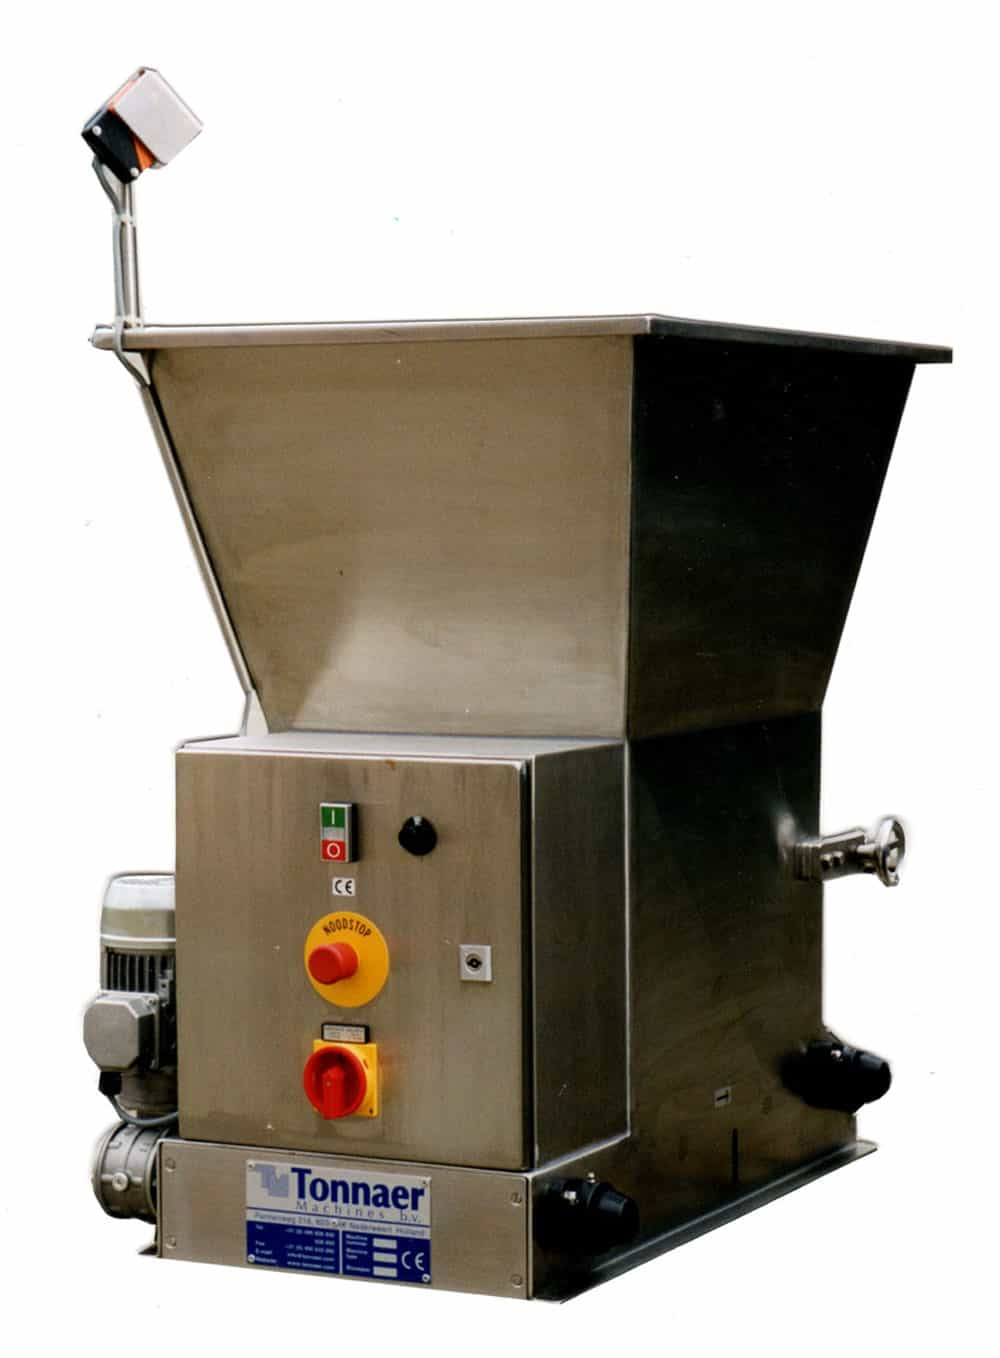 Sugar sprinkling machine universal - Tonnaer Mixing Systems